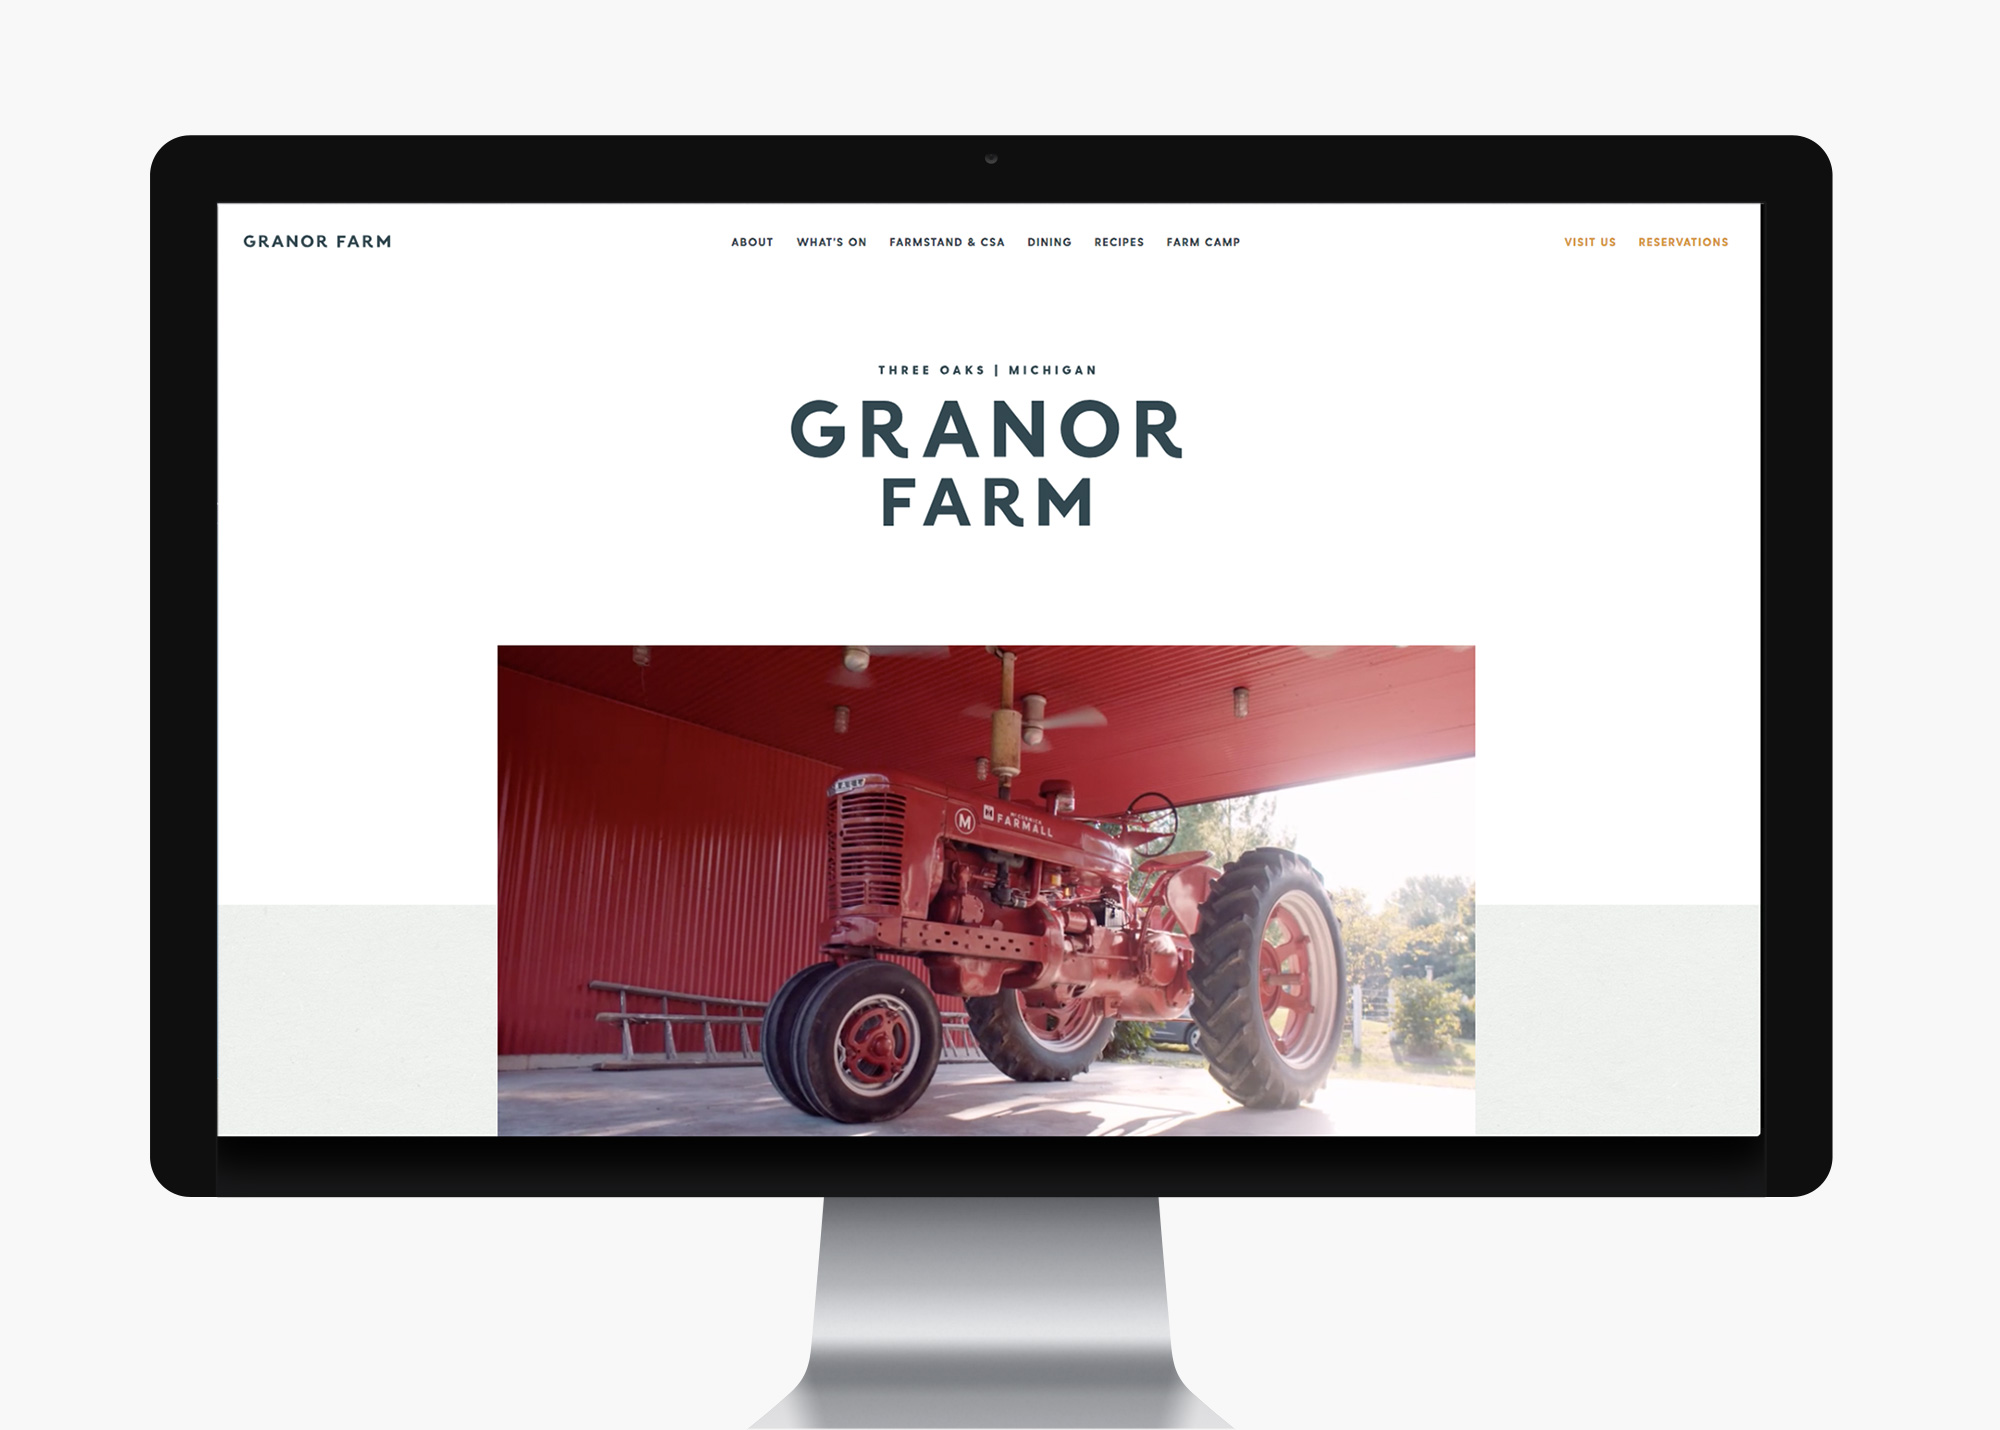 One Darnley Road Granor Farm Website 01